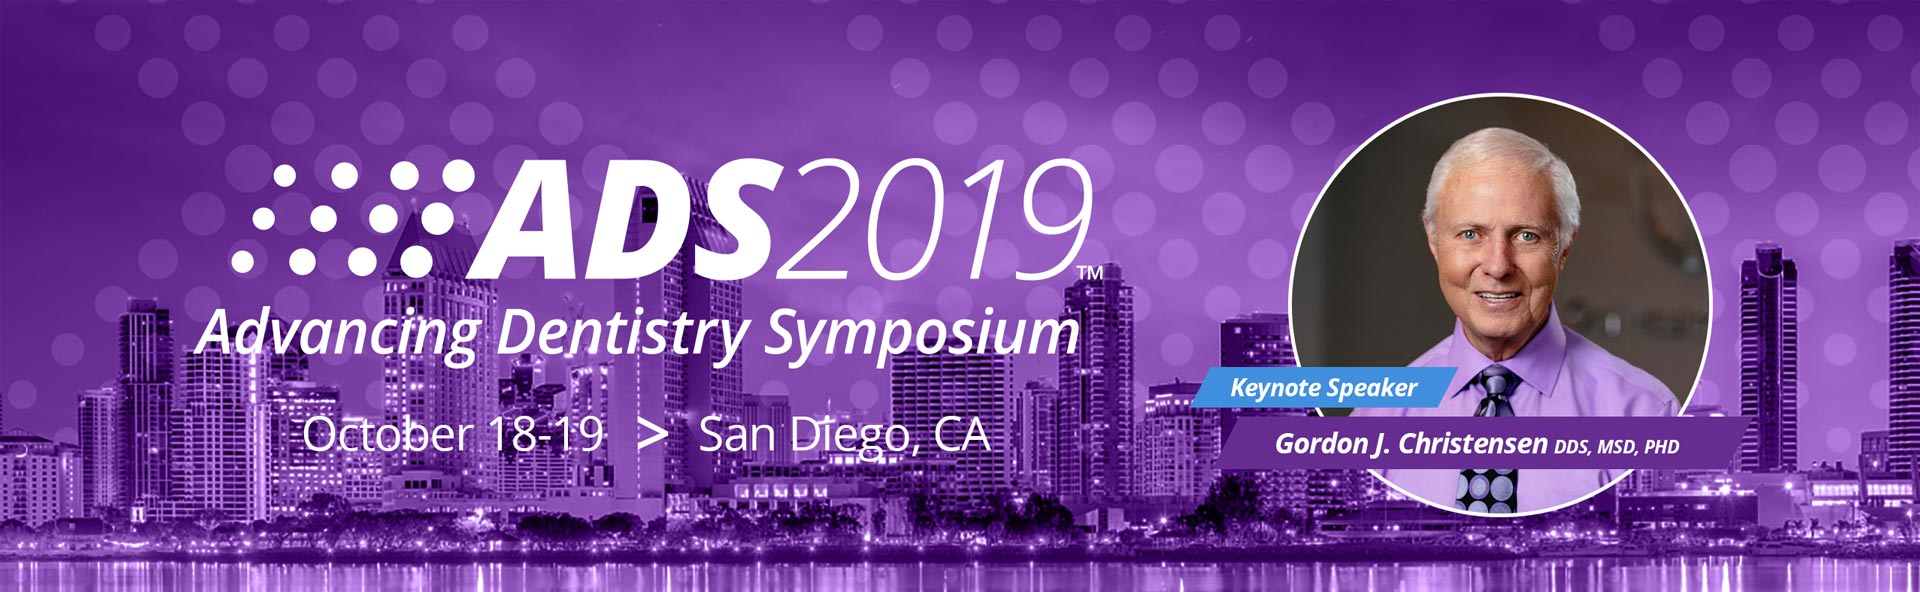 ADS2019 - San Diego, CA - October 18-19